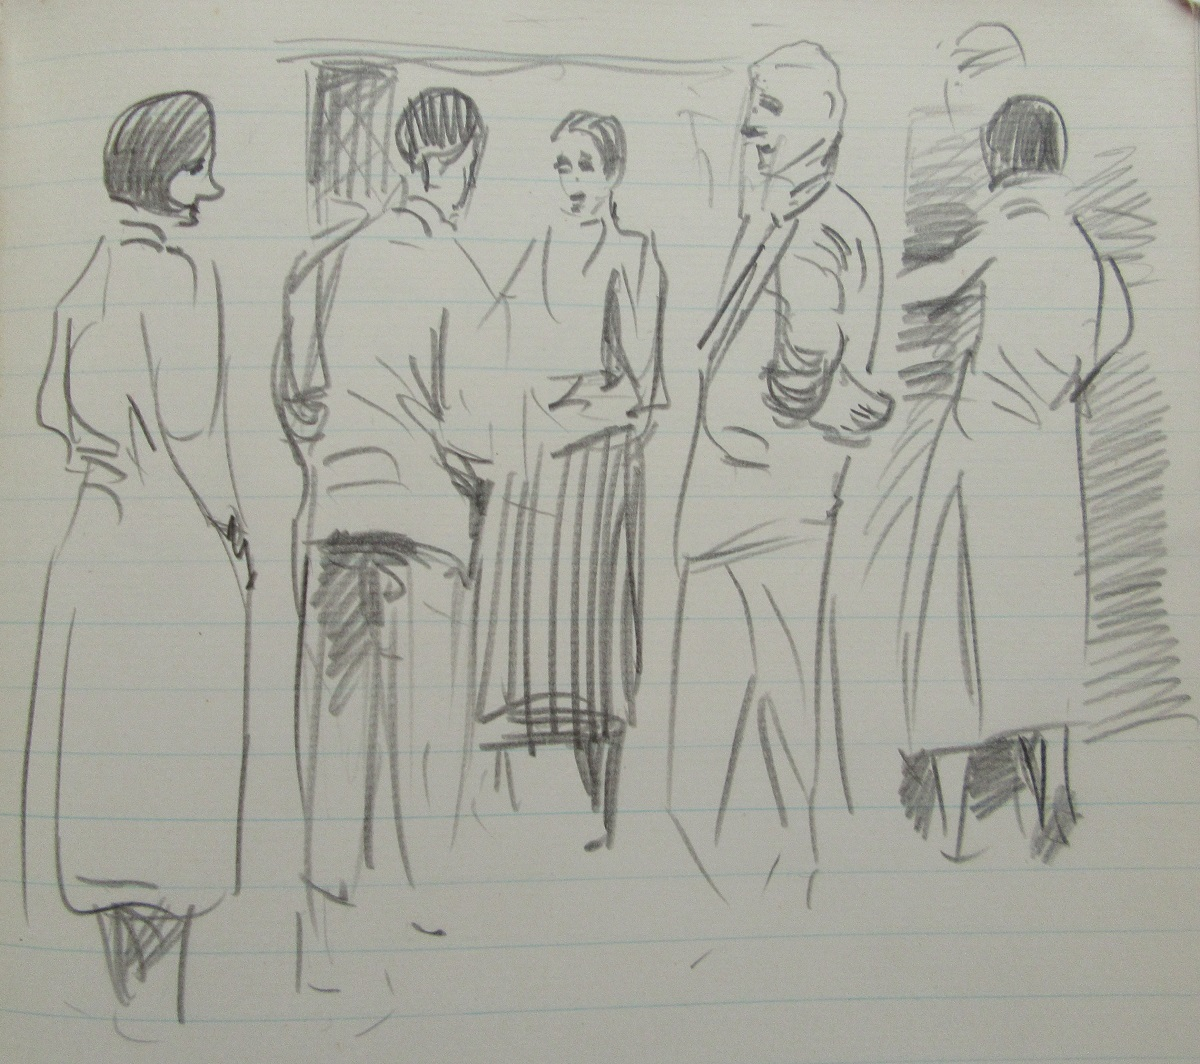 Conversation piece with 5 figures